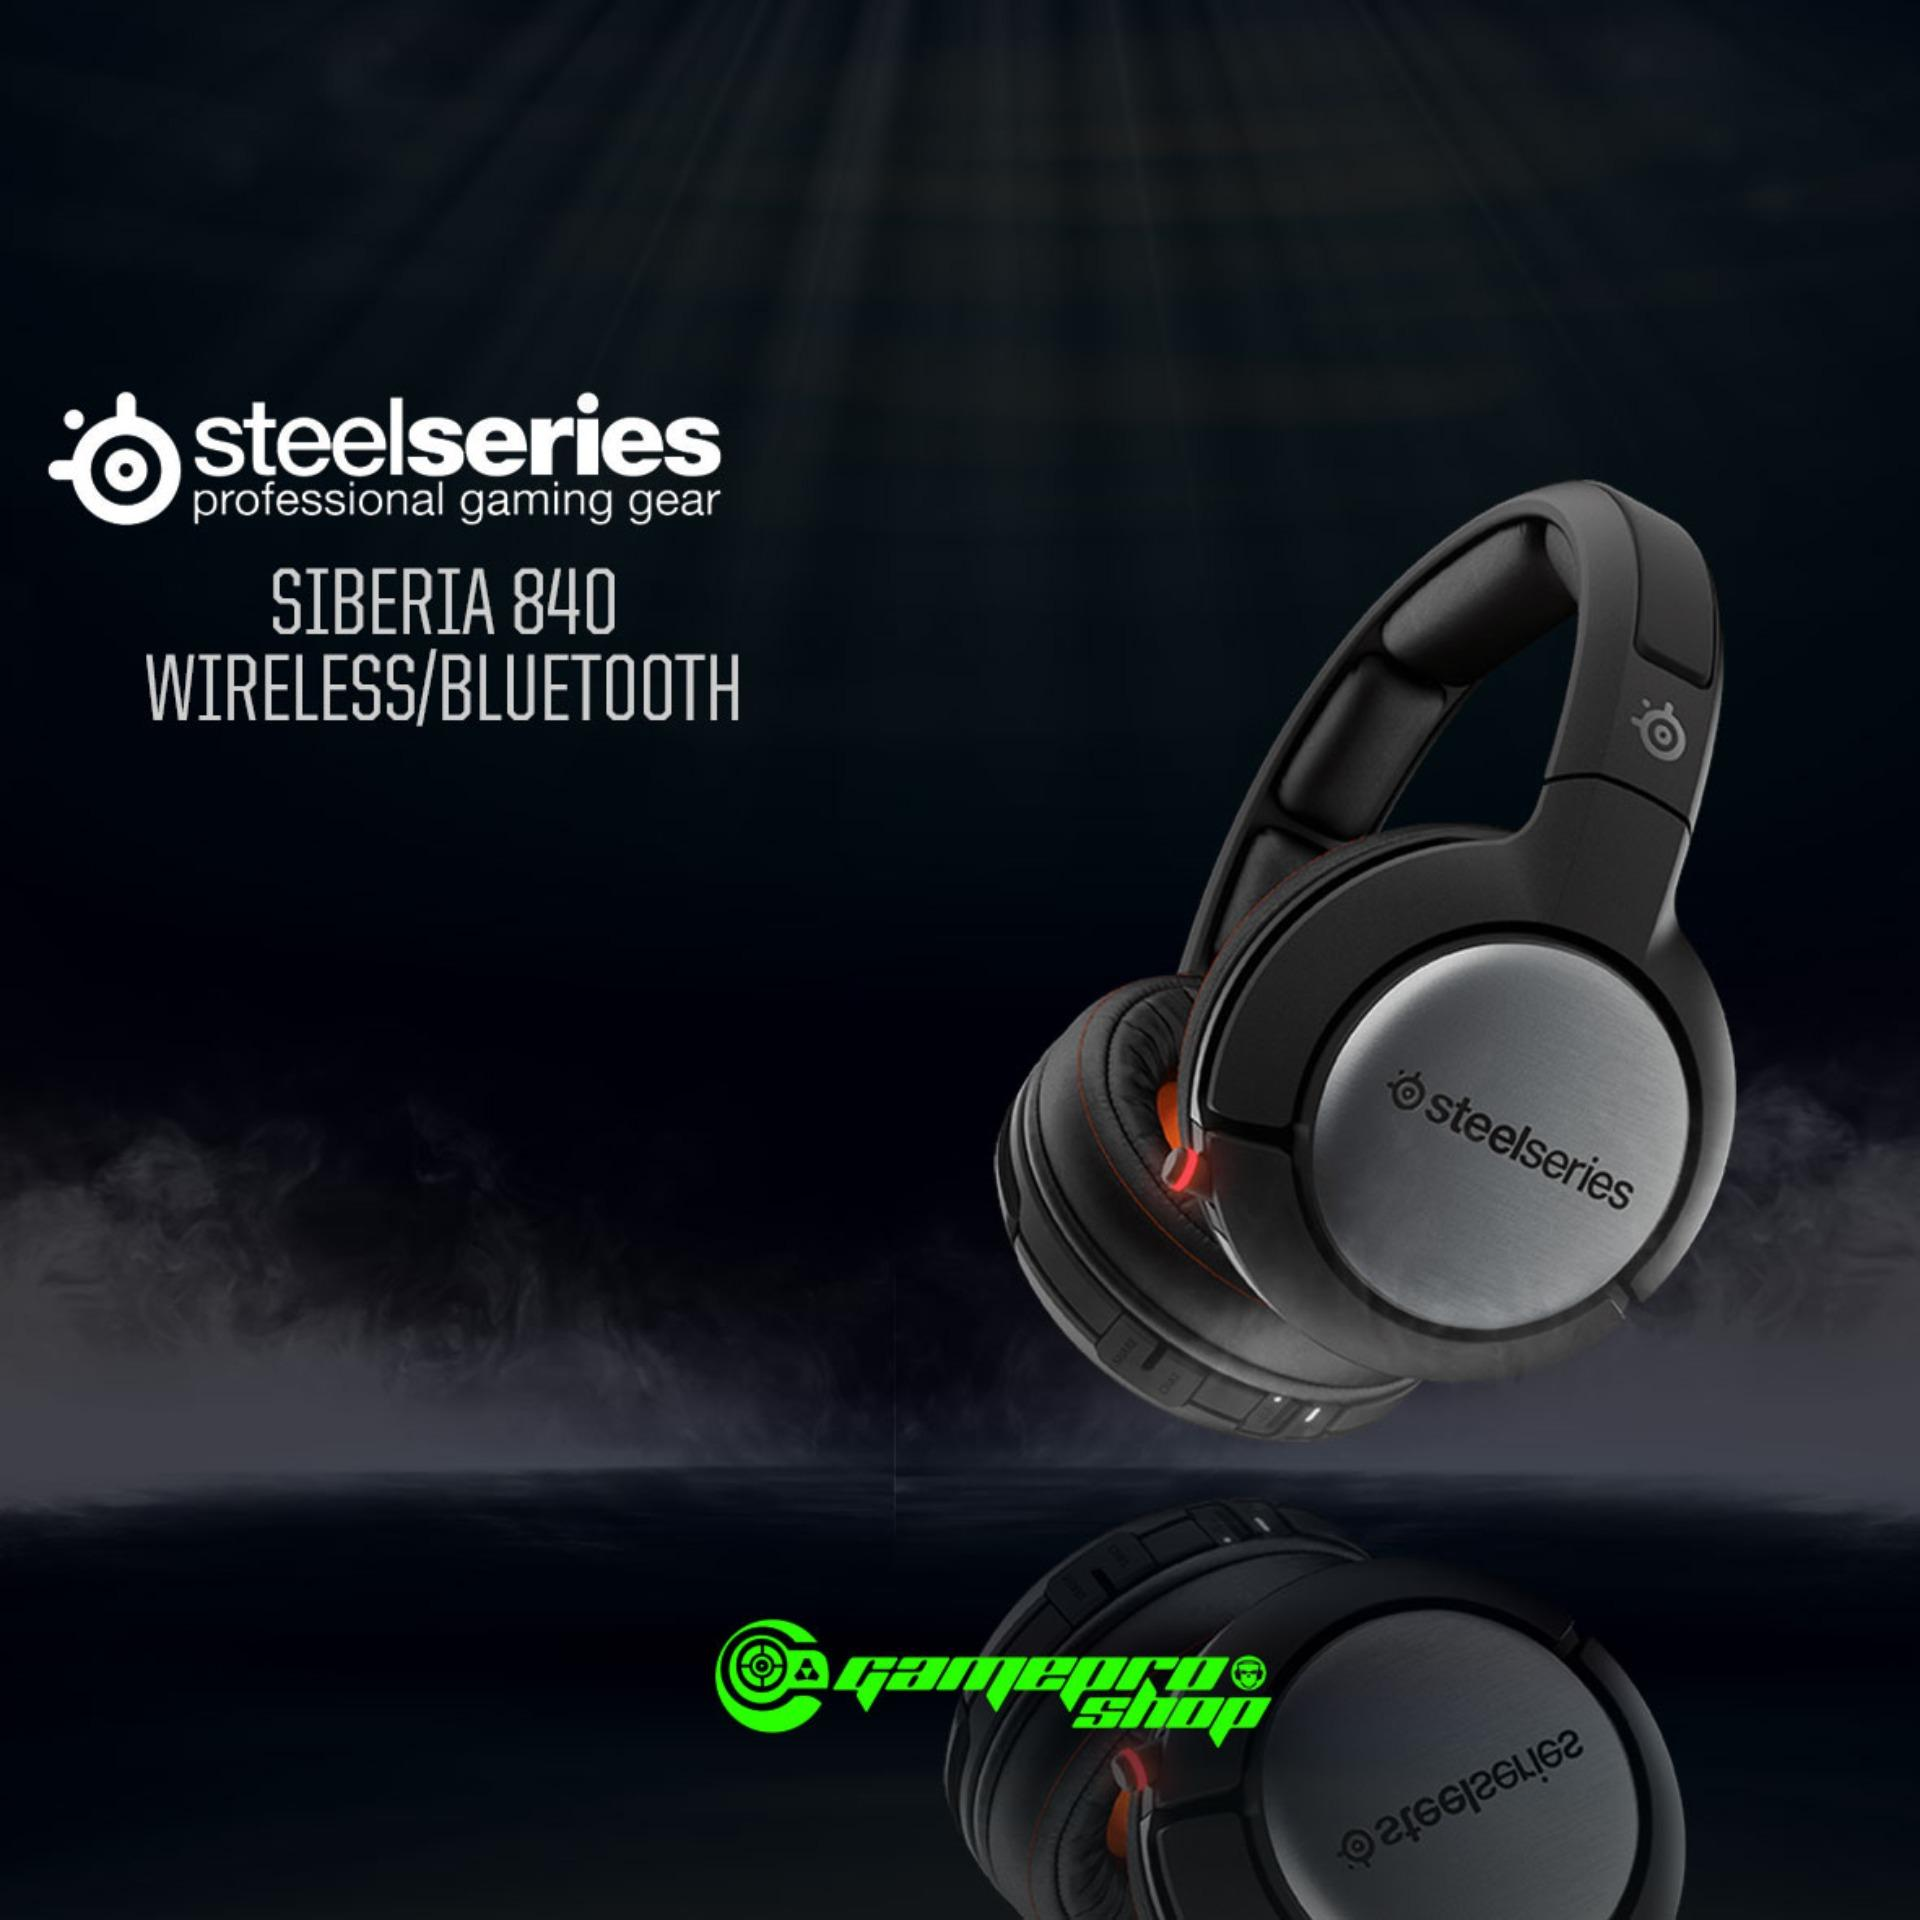 Steelseries Siberia 840 Wireless Bluetooth Headset Gss Promo Free Shipping